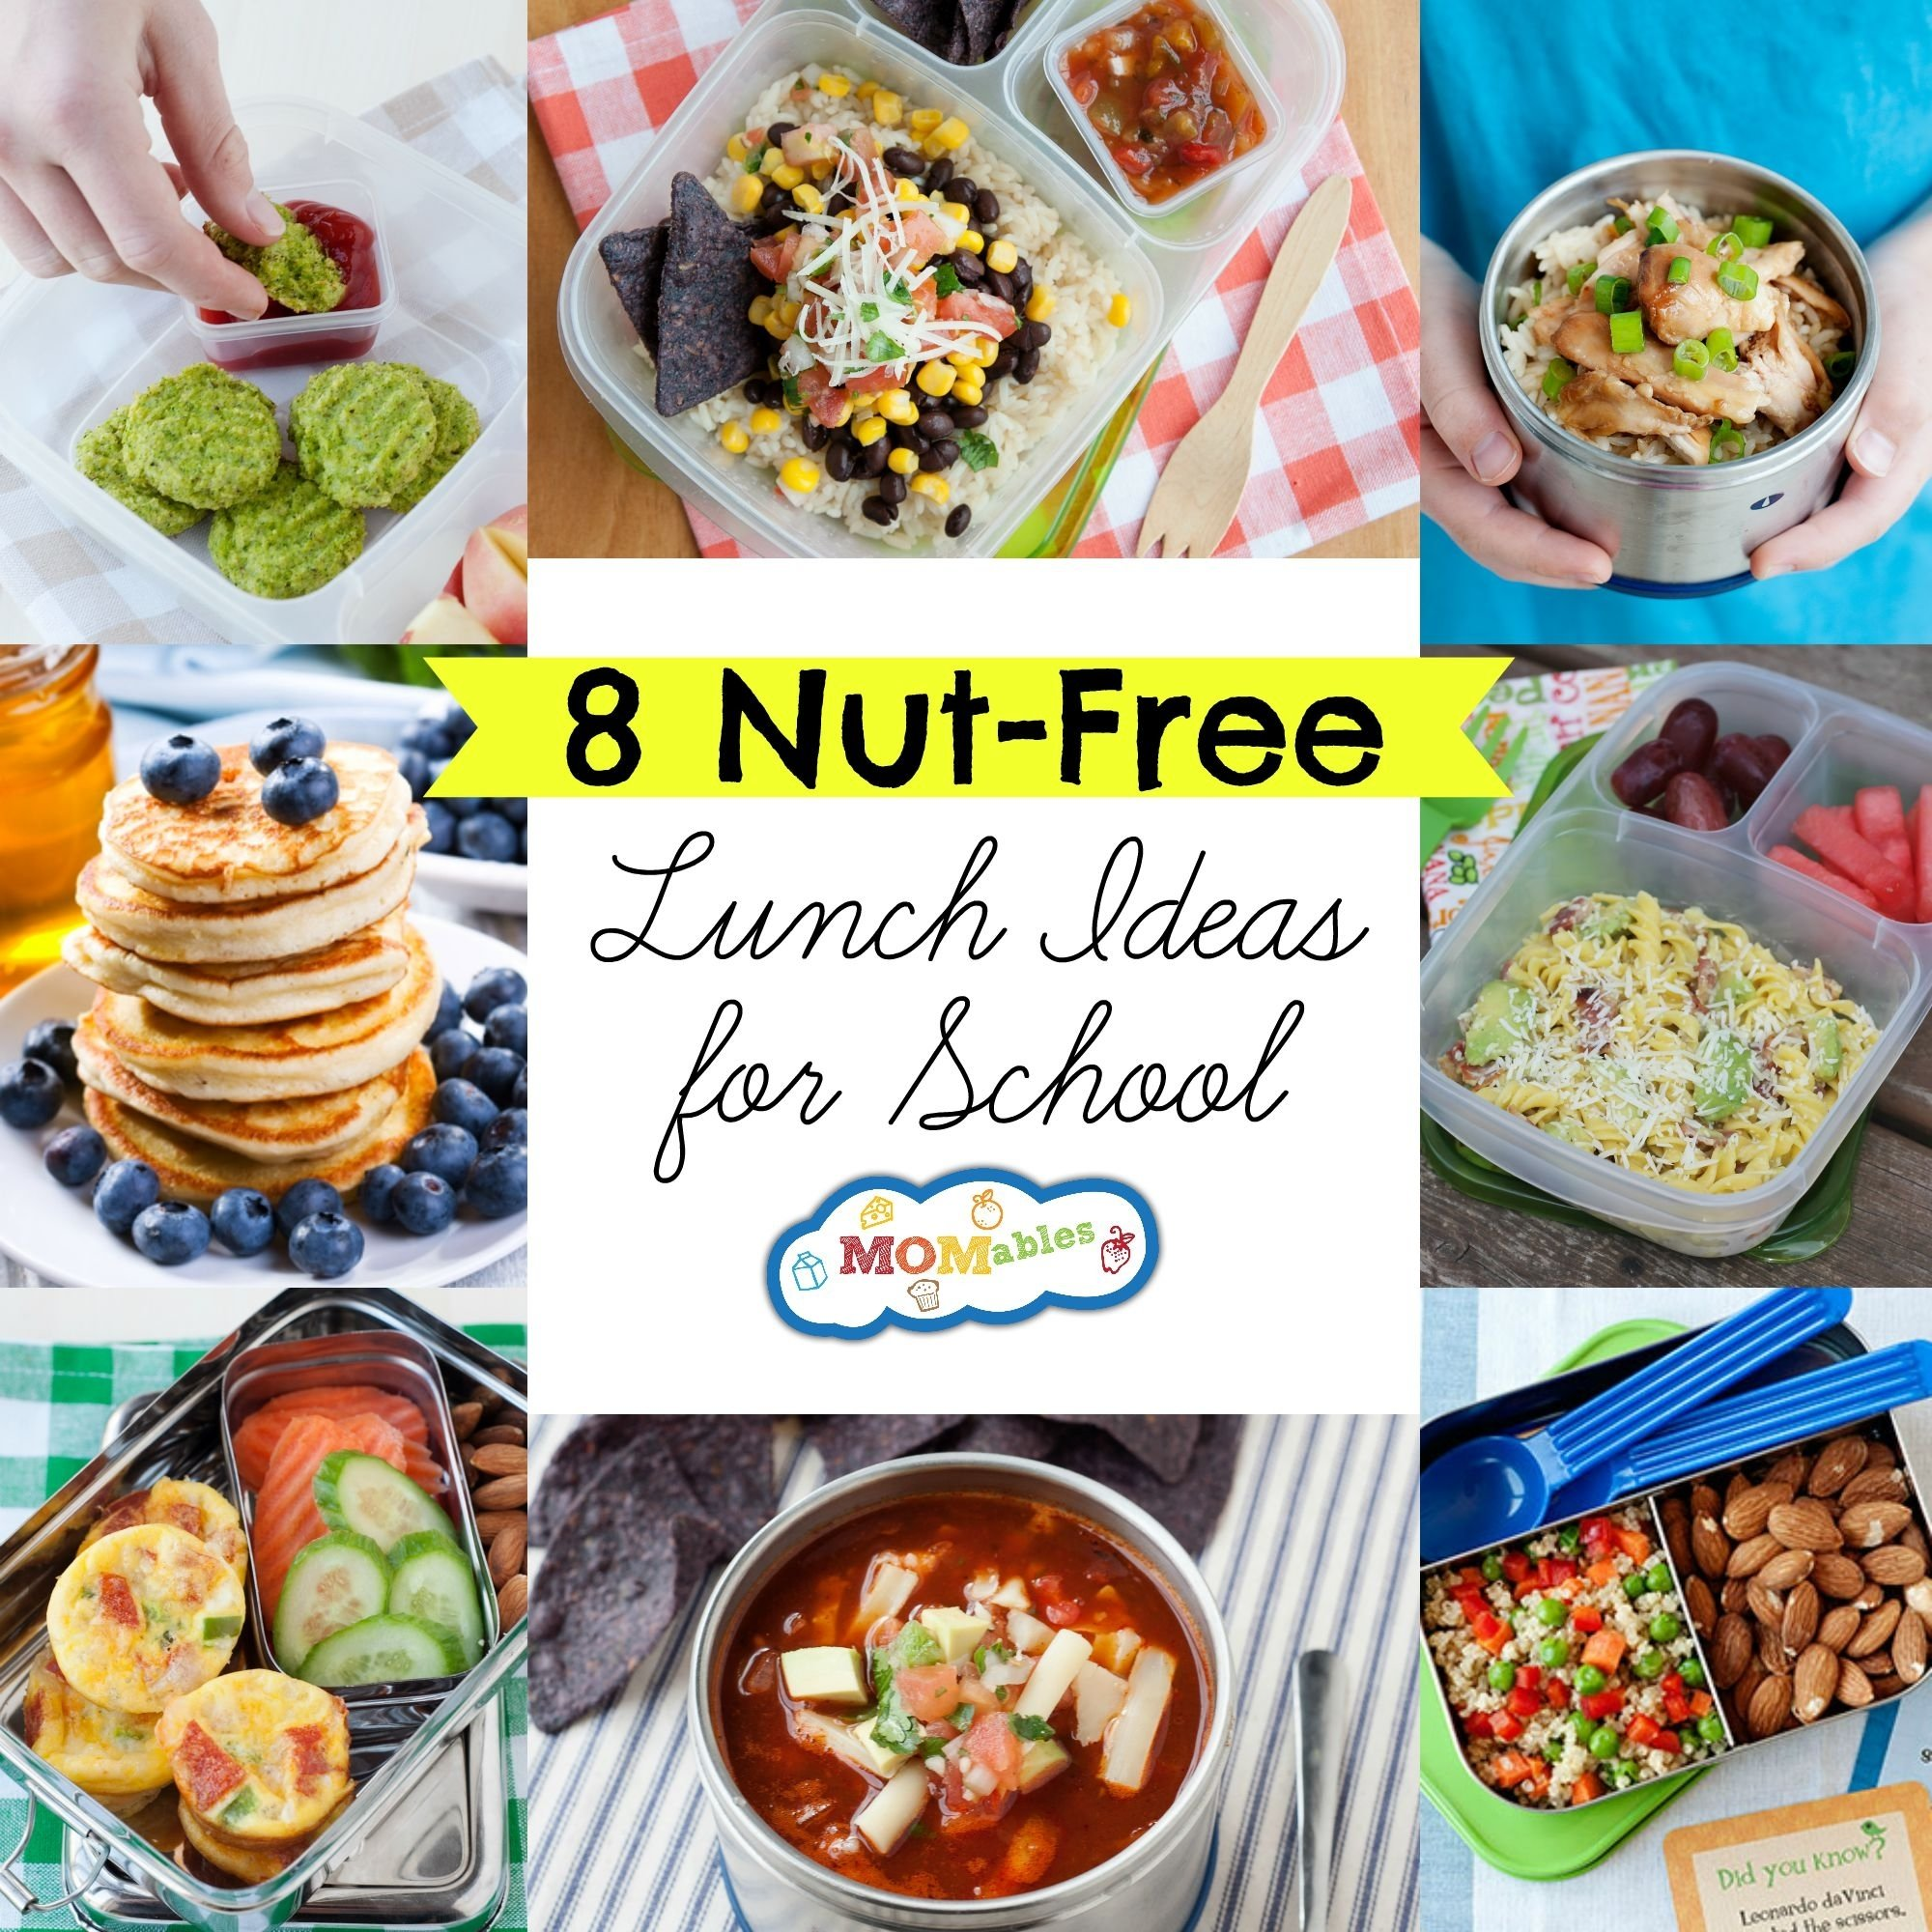 10 Stunning School Lunch Ideas For Kids 8 nut free lunch ideas for school momables 6 2020